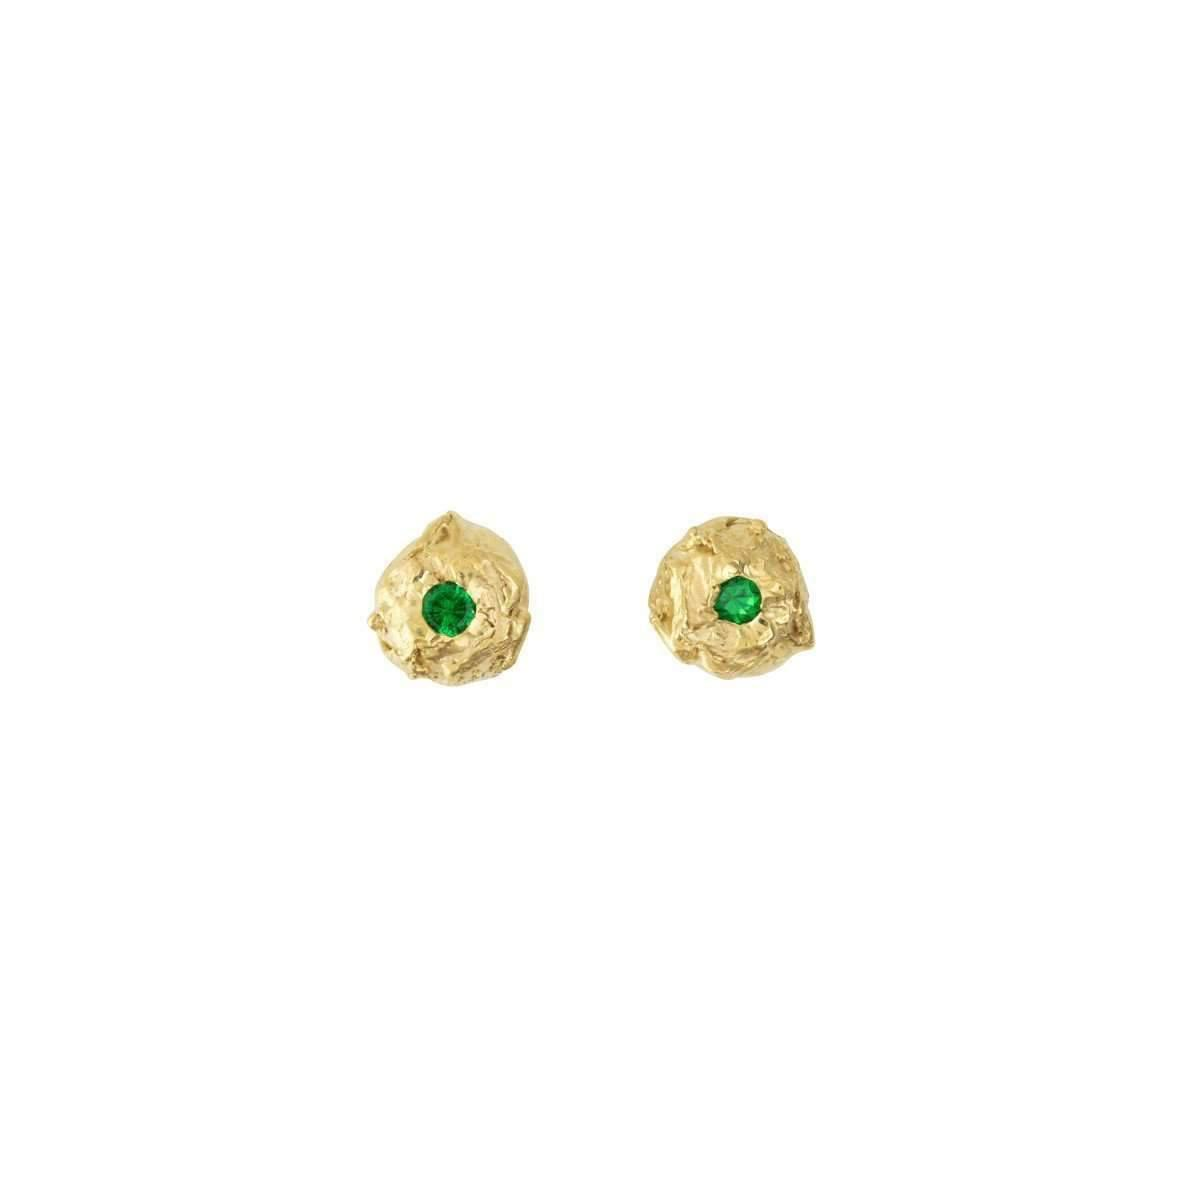 Deborah Blyth Jewellery Lula Stud Earrings With Tsavorites ySOAhCCS9